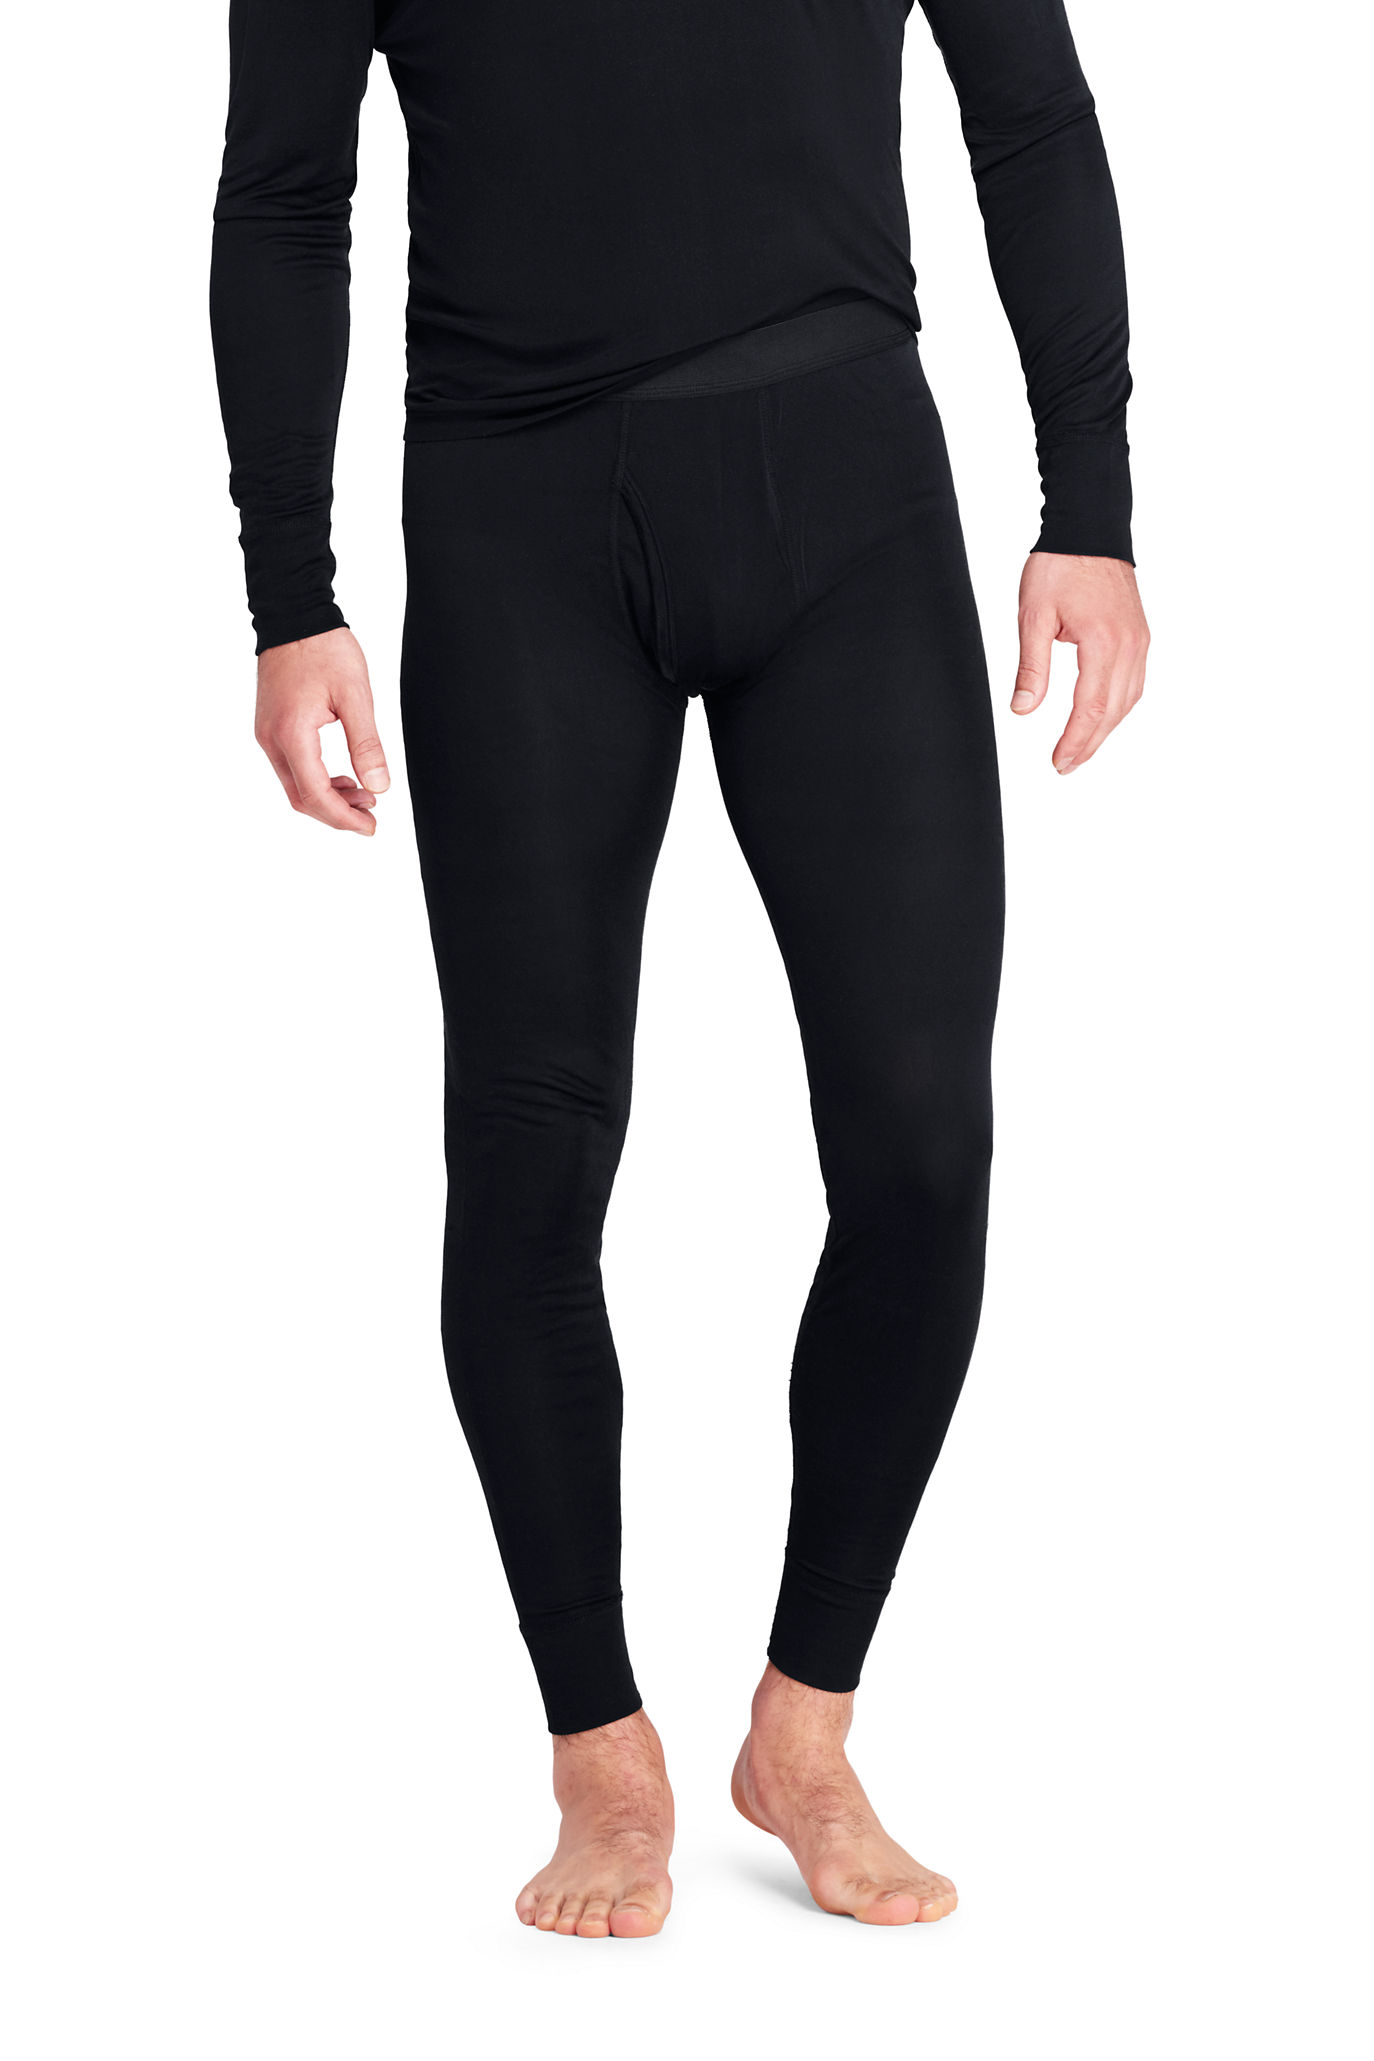 Men's Silk Long Underwear Pants